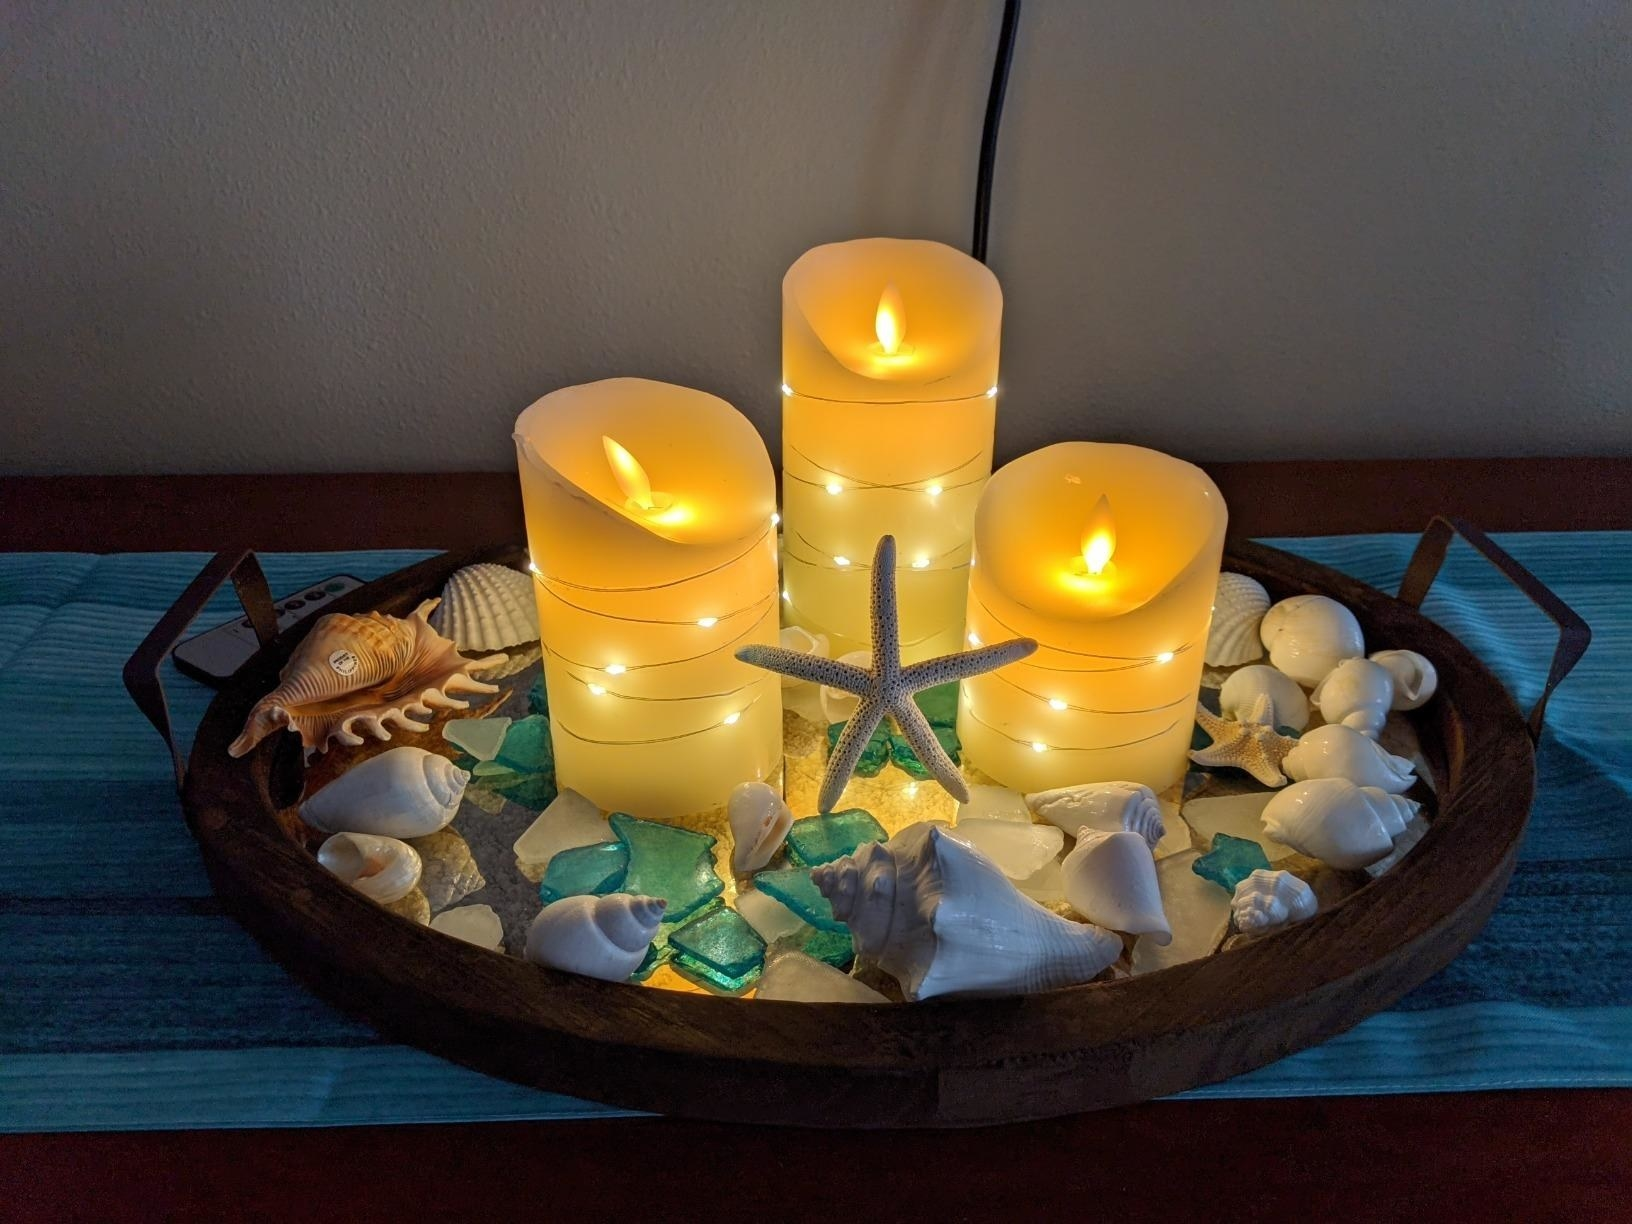 A reviewer's three candles in different heights on a tray